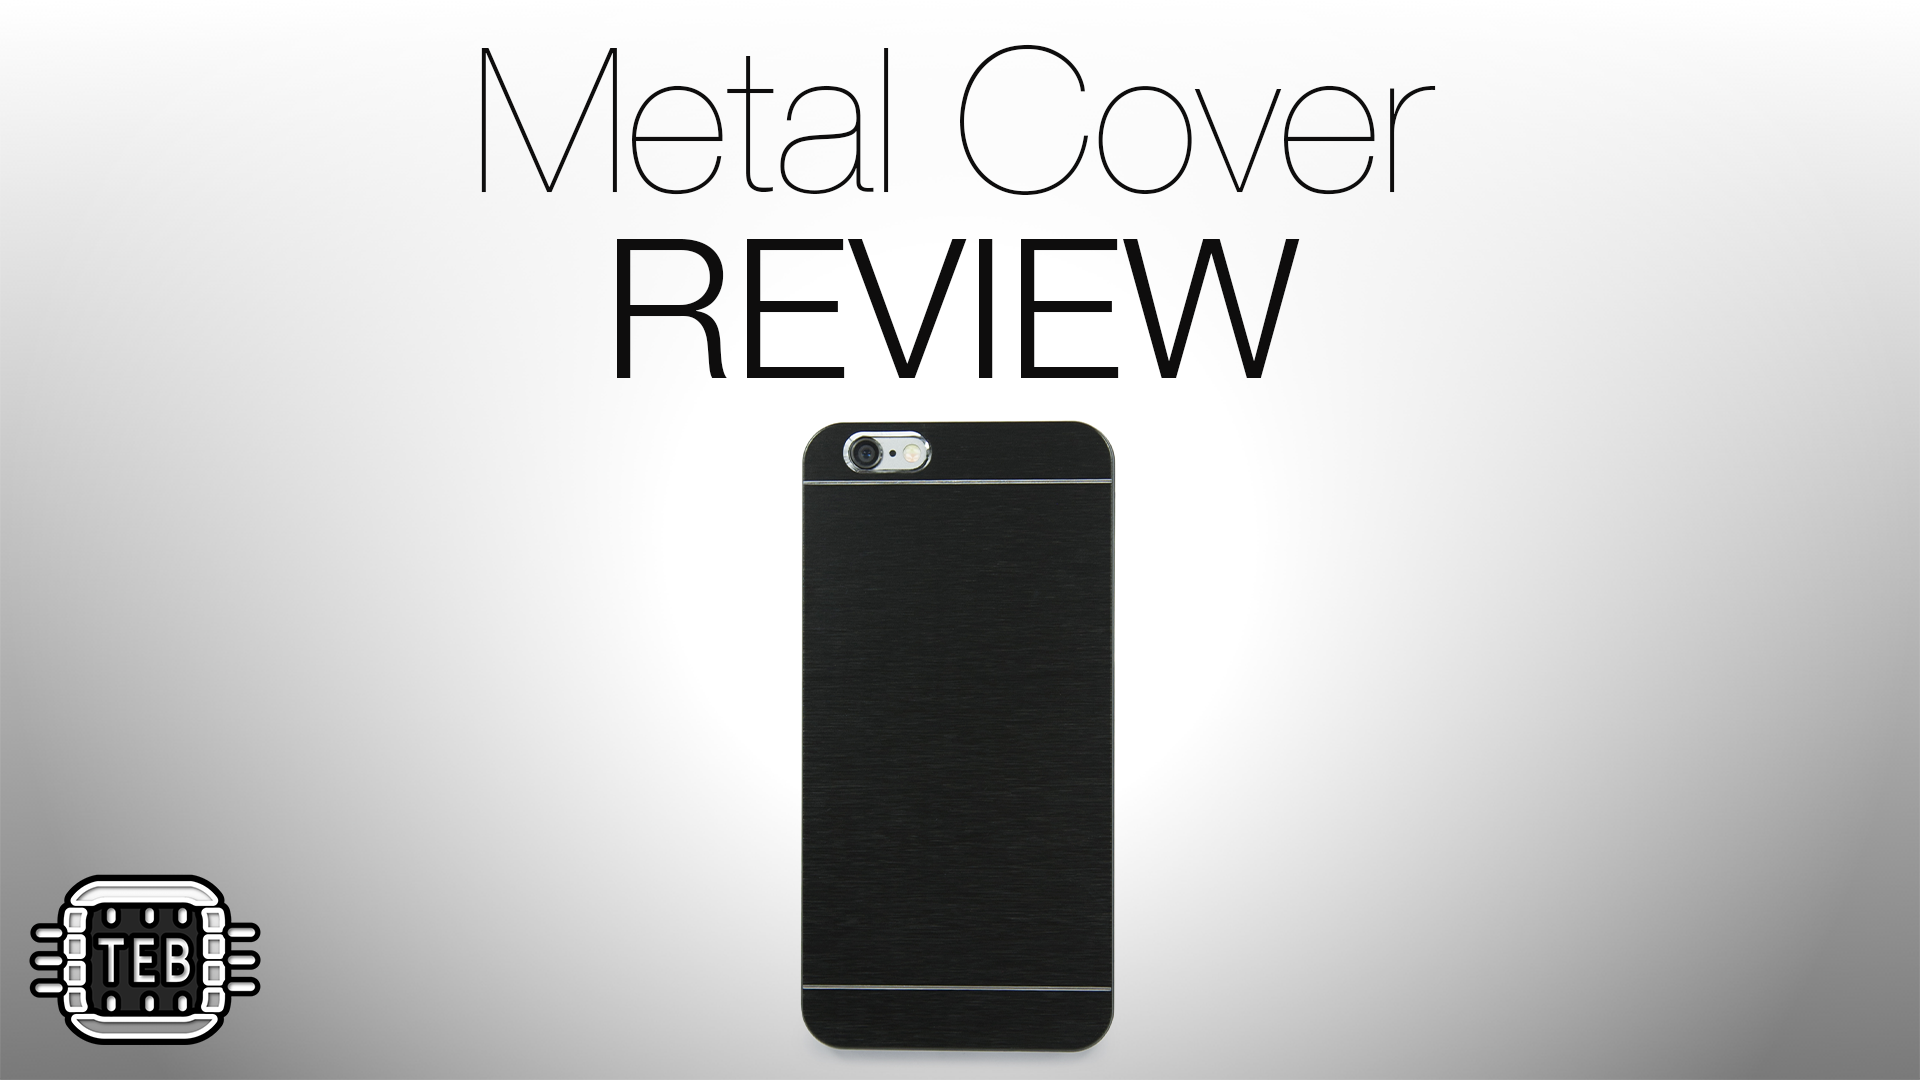 Custodia Metal Cover per iPhone 6 di VaVeliero: la REVIEW di TechEarthBlog [VIDEO]